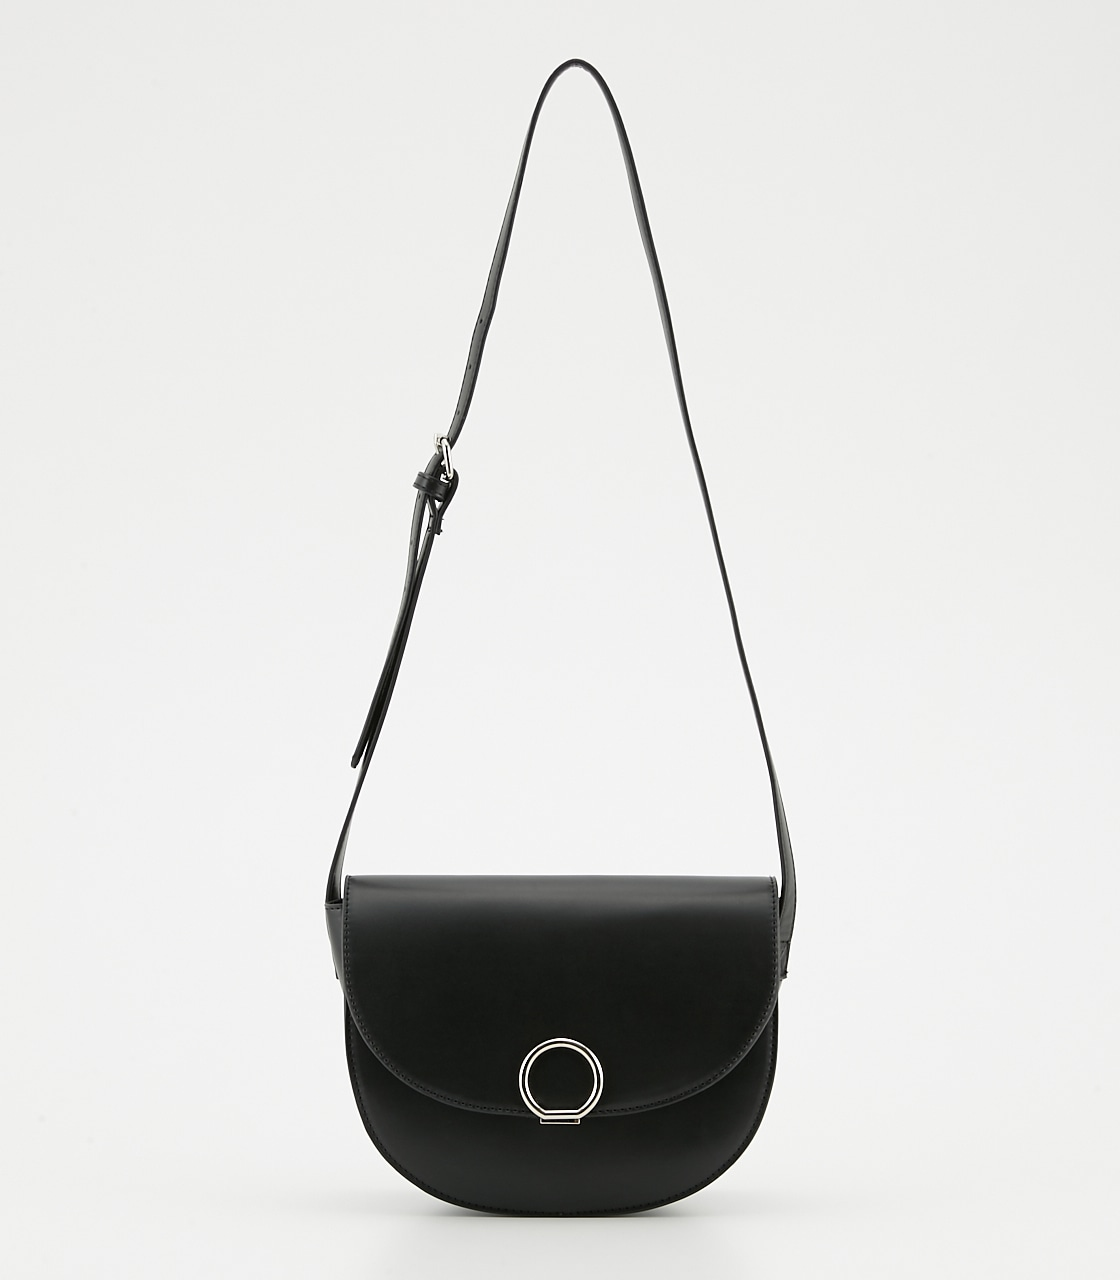 【AZUL BY MOUSSY】サークルメタルショルダーバッグ 詳細画像 BLK 2